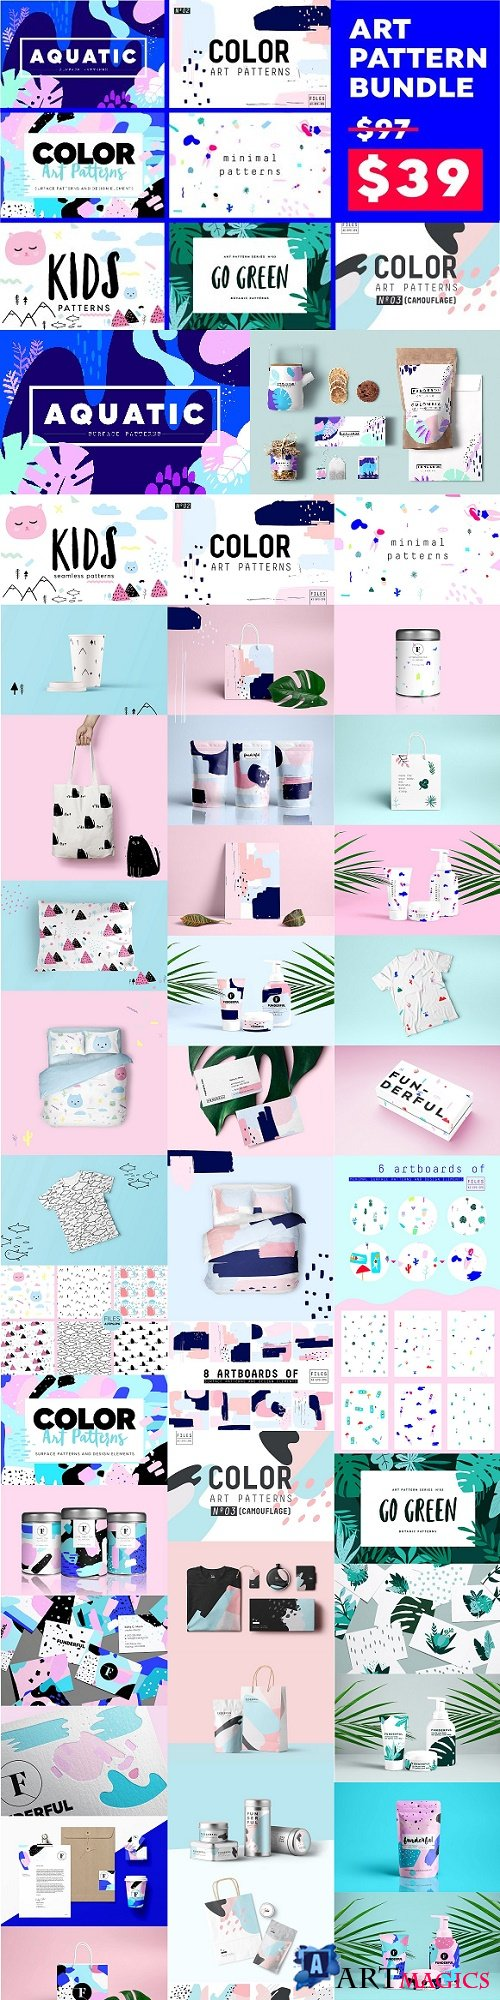 Art Pattern Bundle 2079108